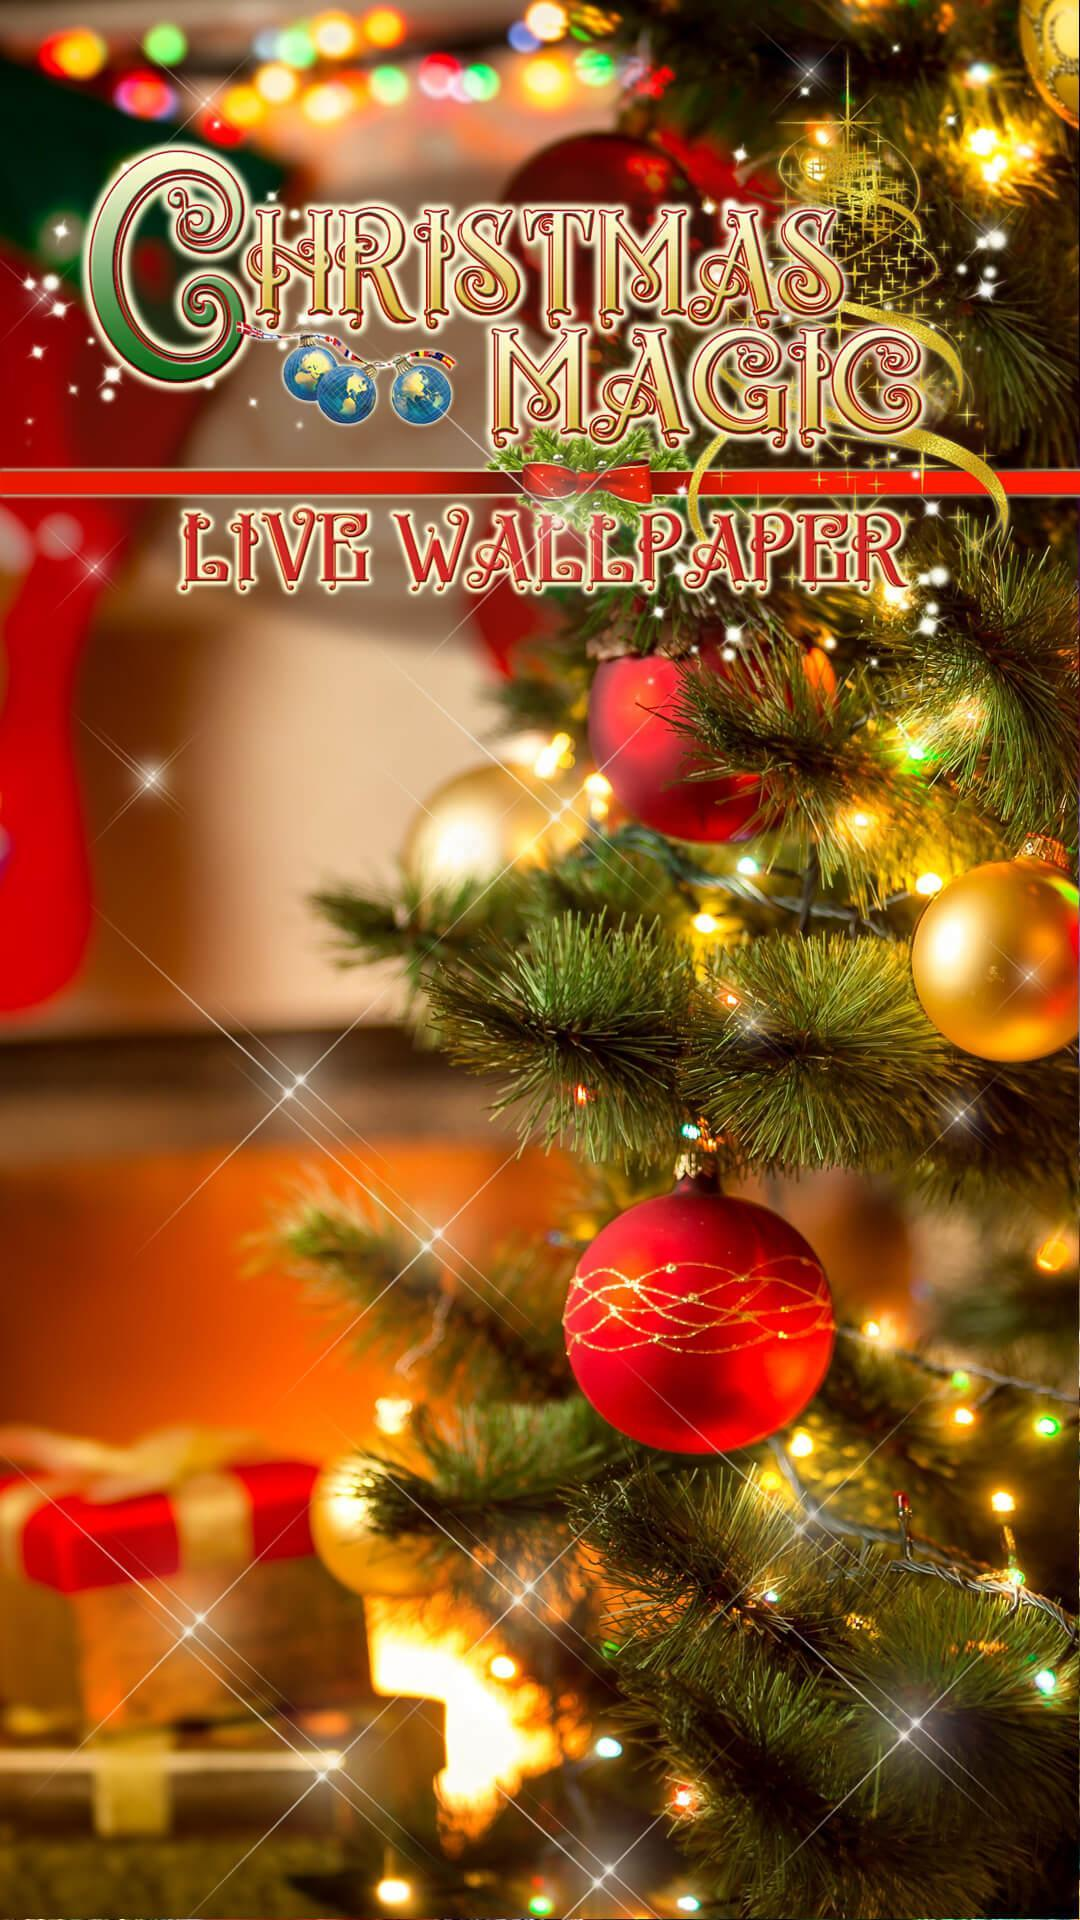 Download 200+ Wallpaper Android Christmas